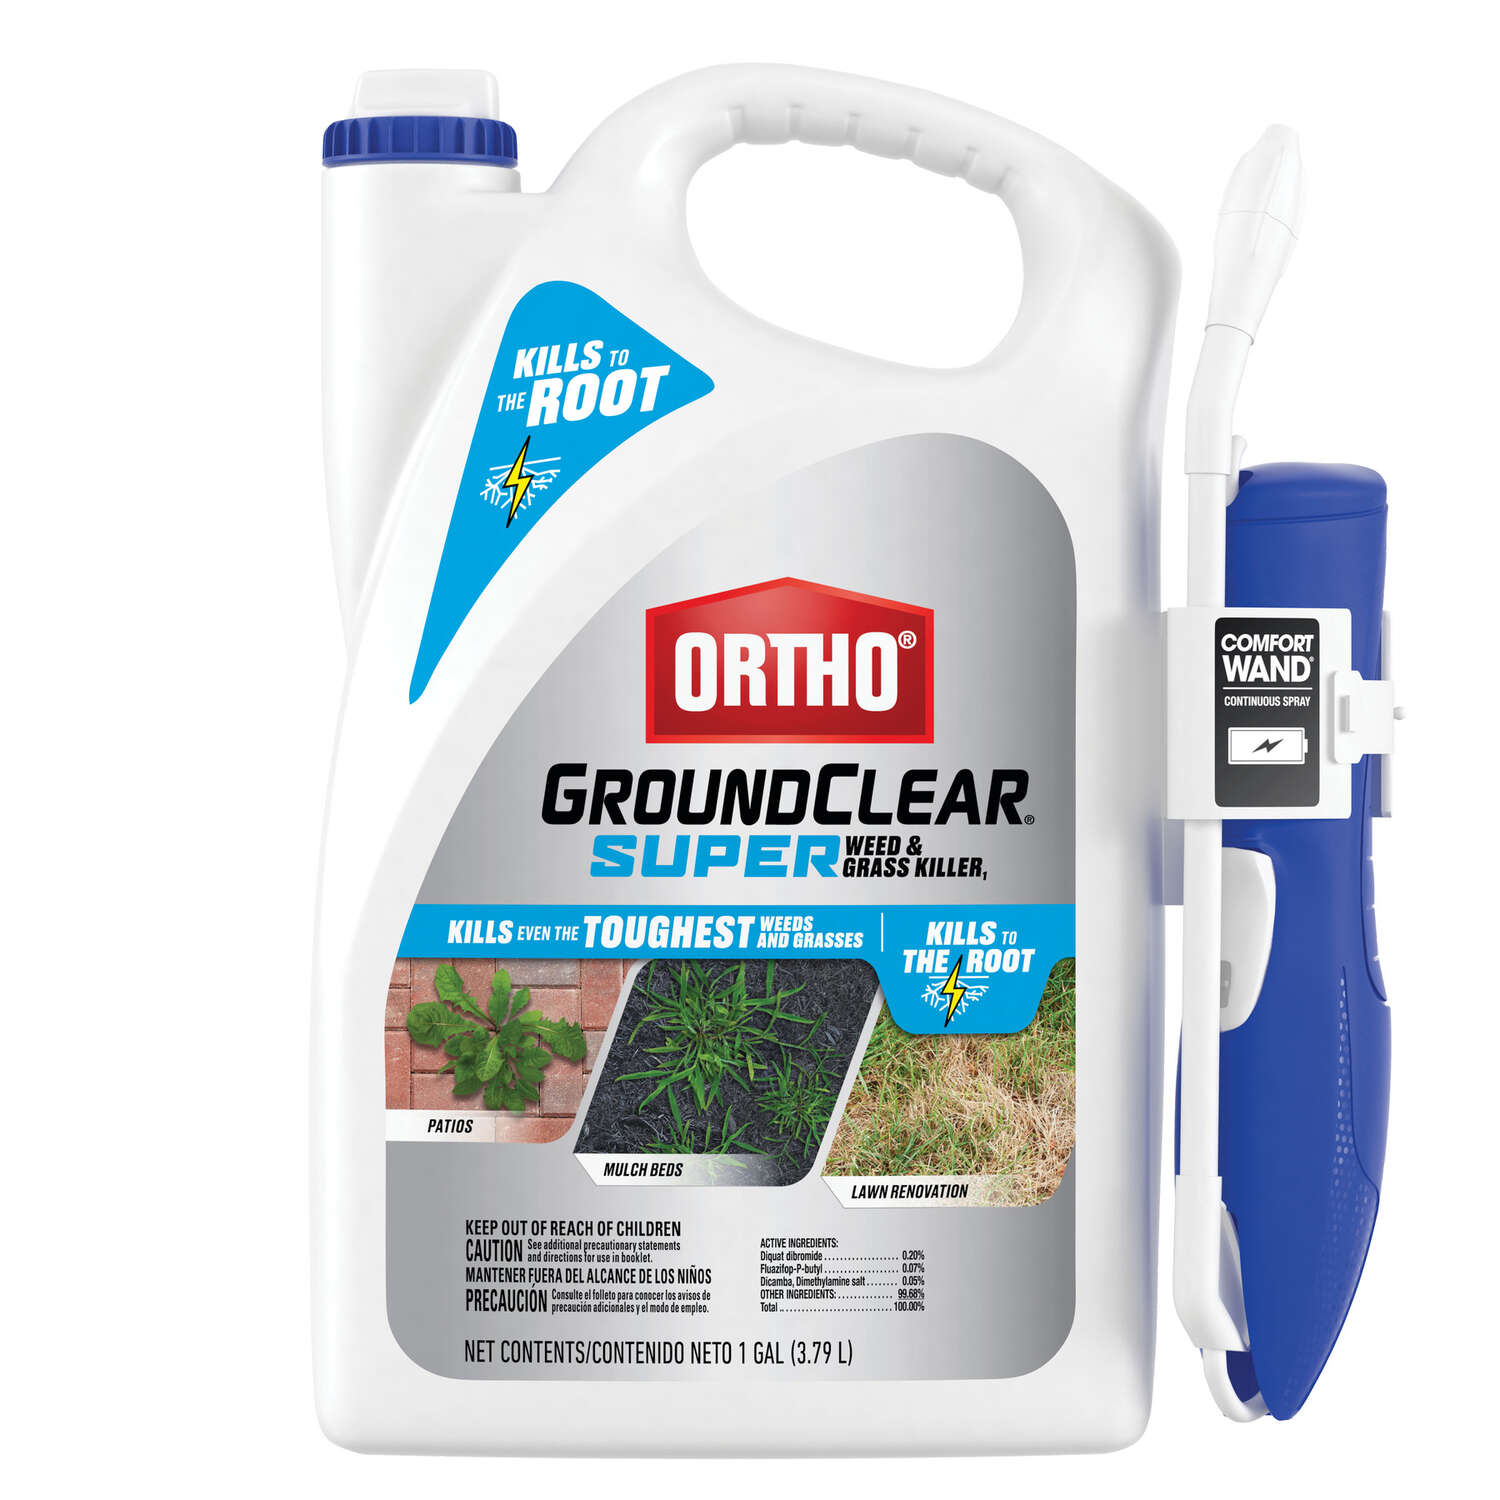 Ortho  GroundClear  Grass & Weed  Killer  RTU Liquid  1 gal.